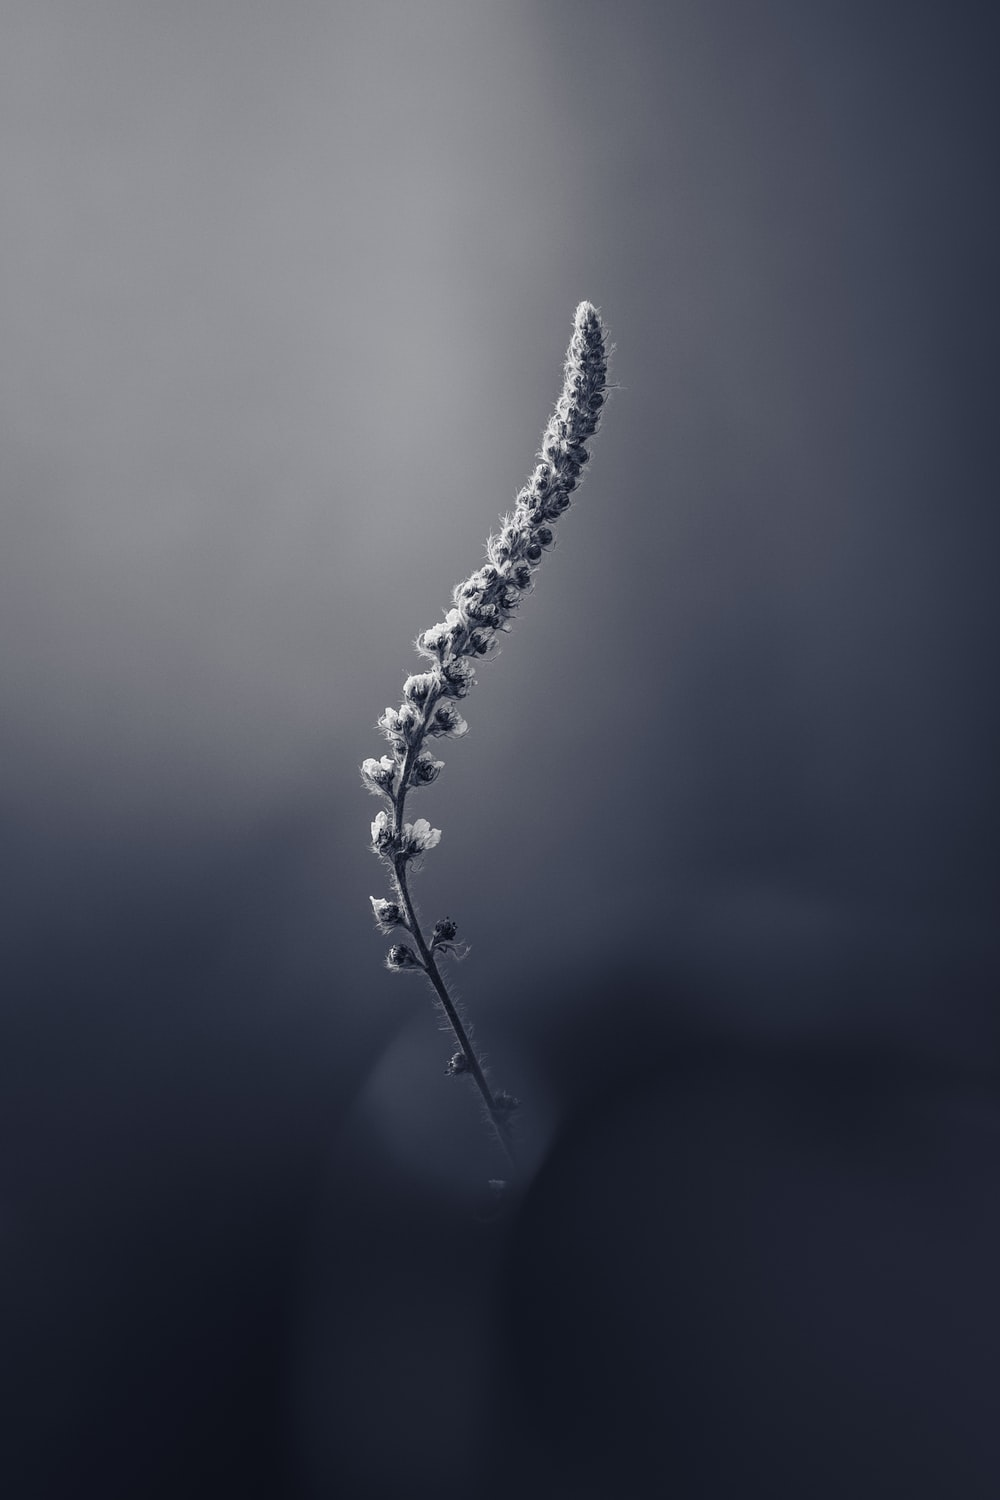 water droplets on plant stem